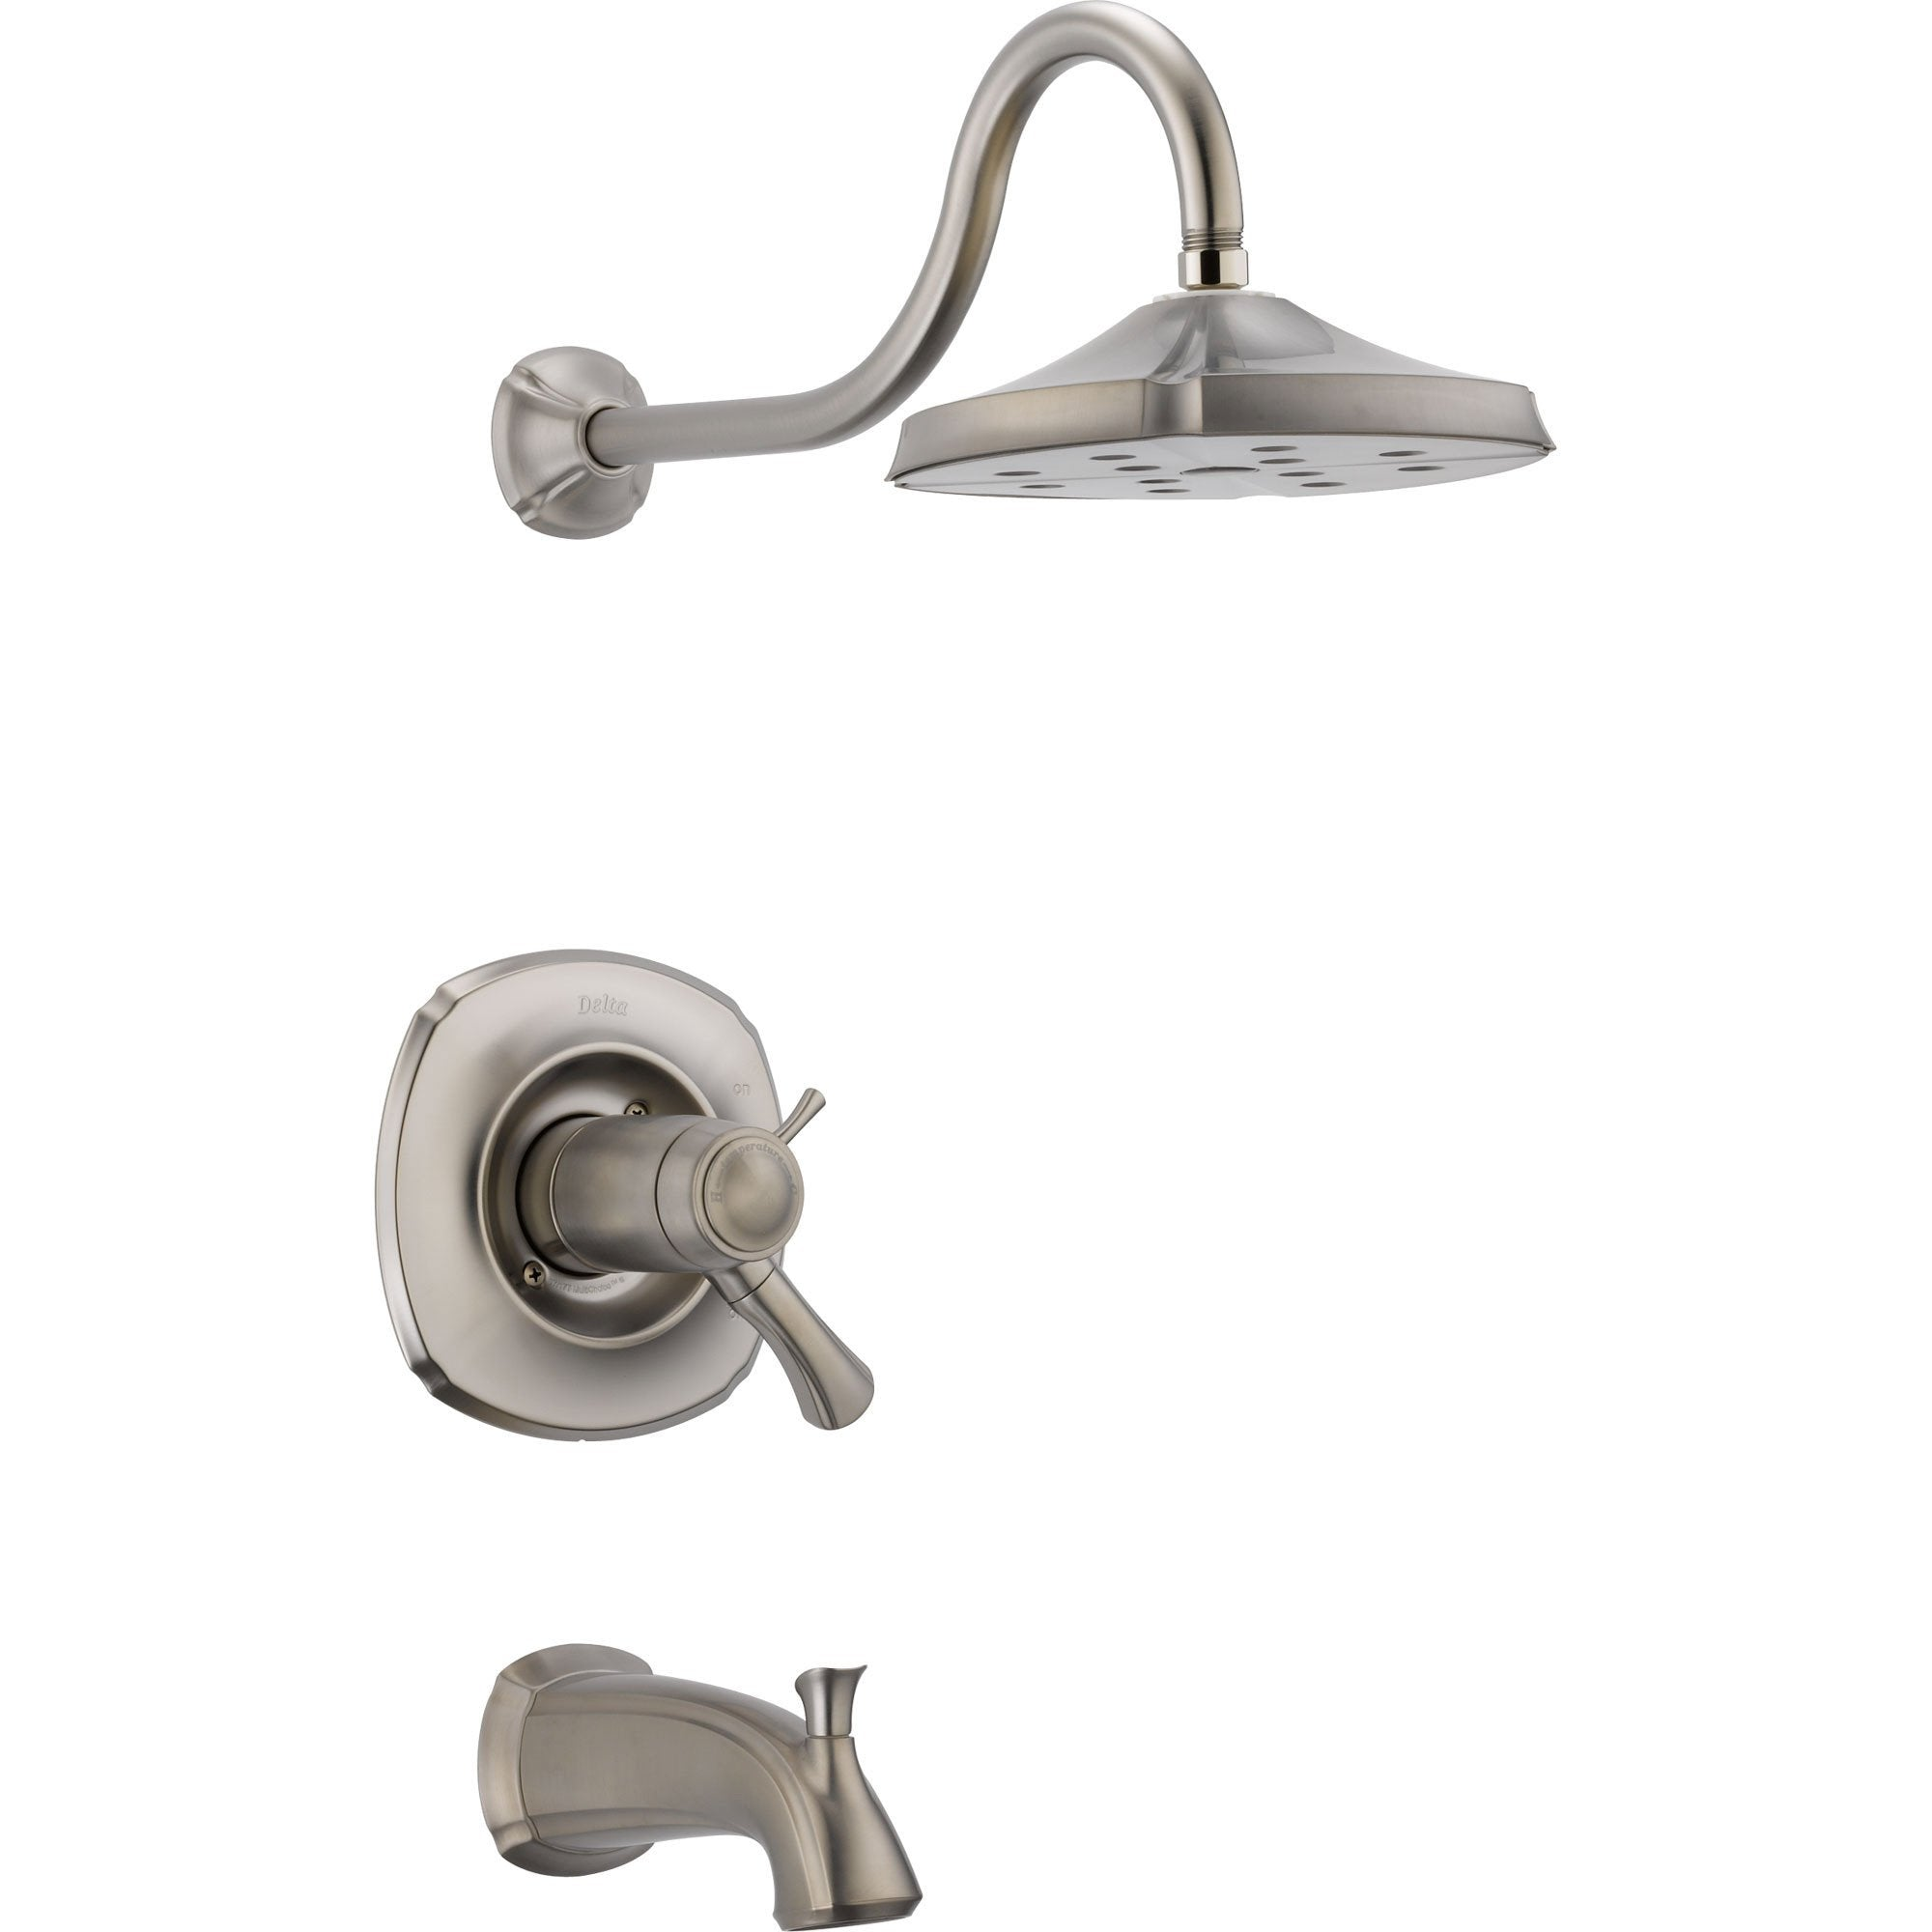 Delta Addison Stainless Steel Finish Thermostatic Tub/Shower with Valve D727V